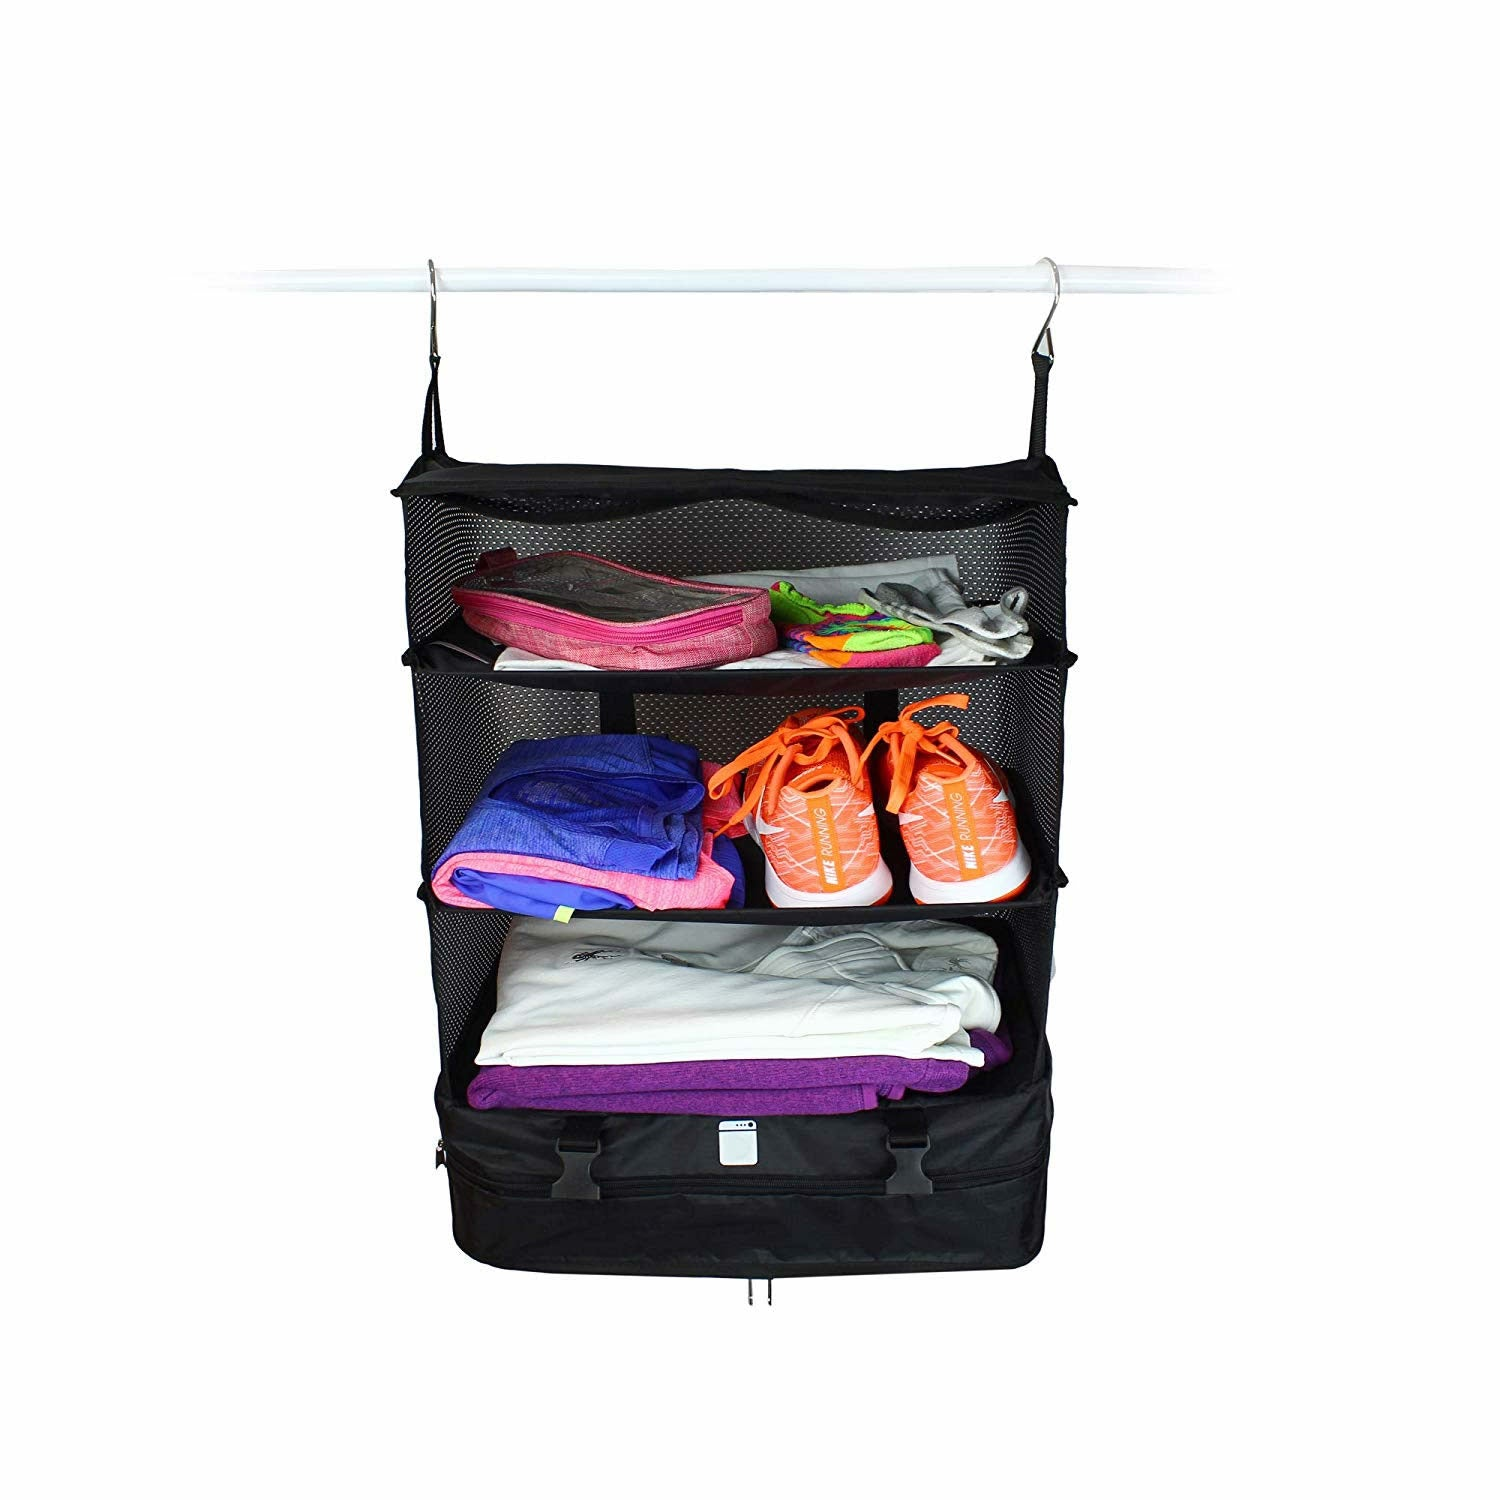 shopify-Carry On Closet Baggage Organizer-8